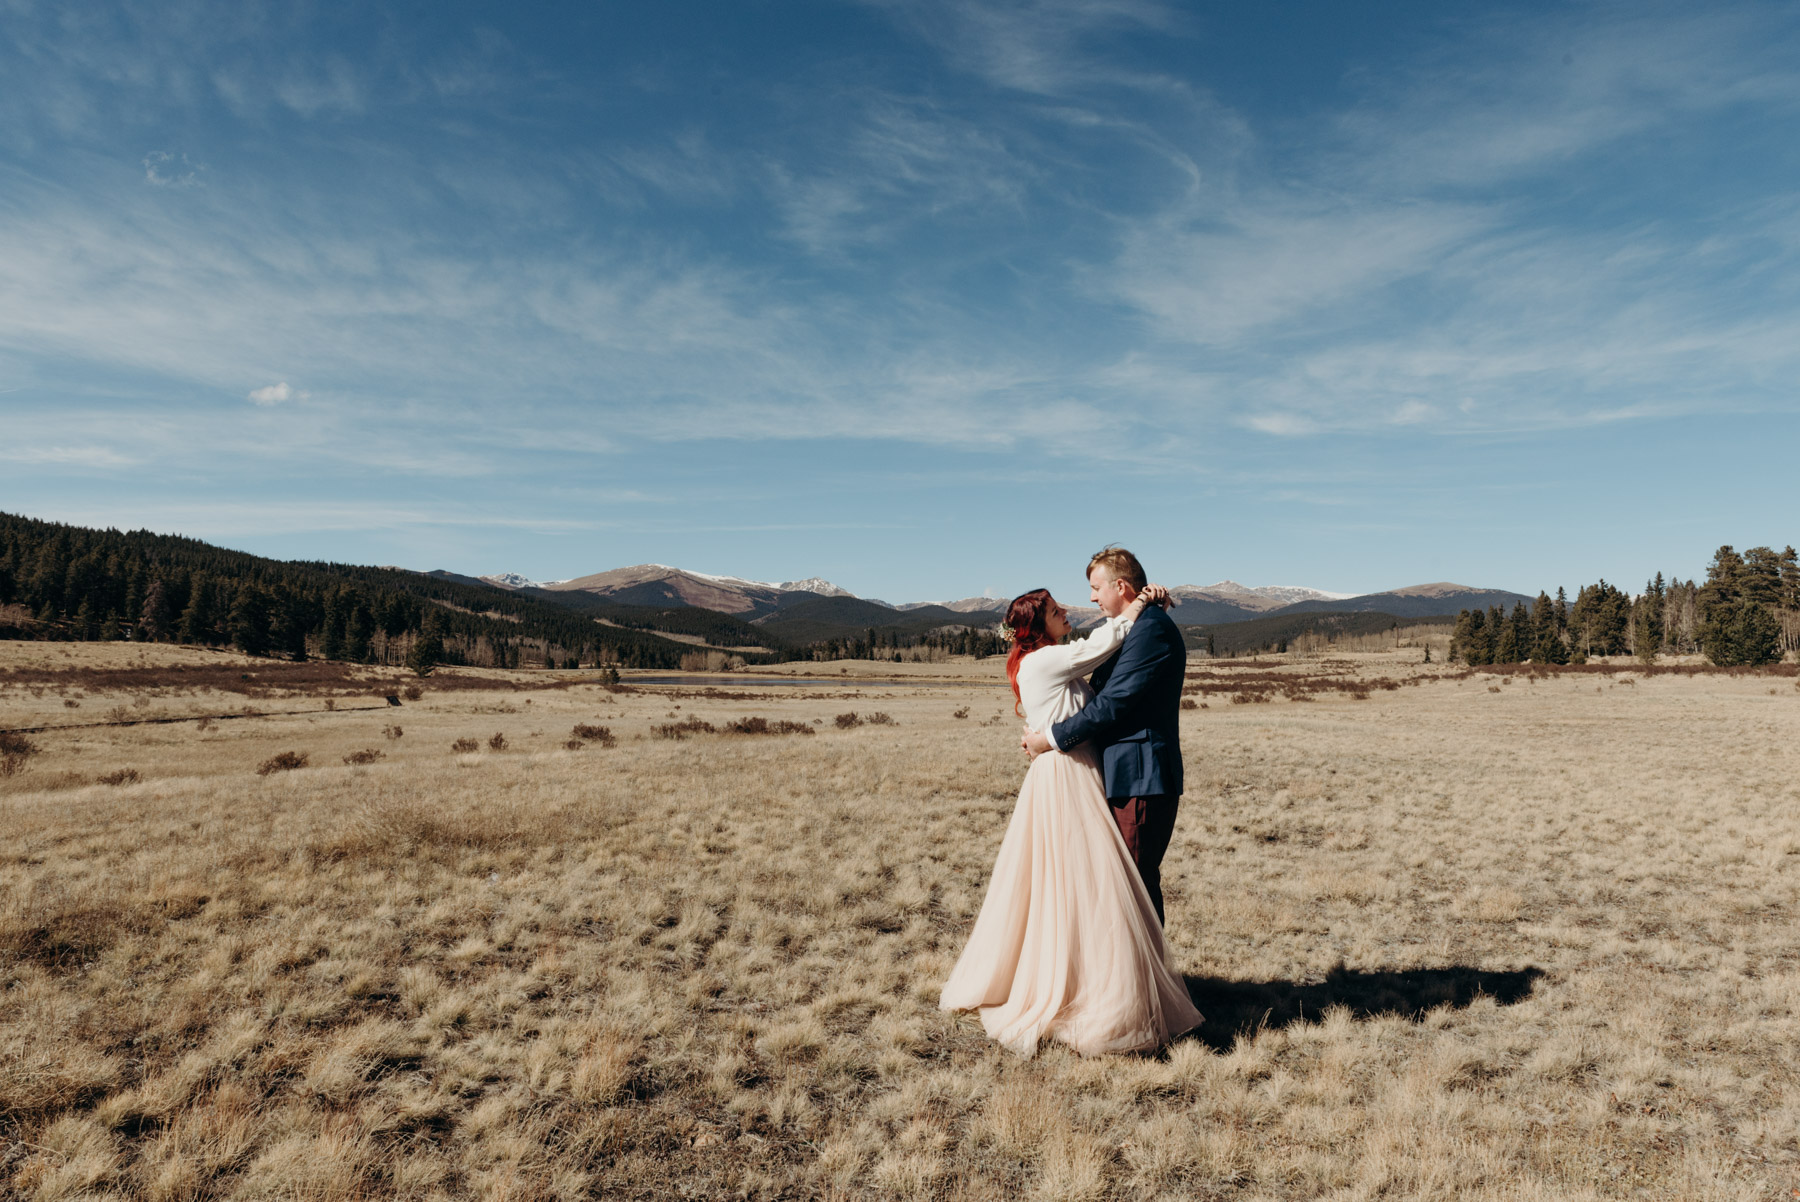 Megan and Chris, slow dancing in a field shortly before their wedding in Kenosha Pass. Megan made the most beautiful mountain bride.